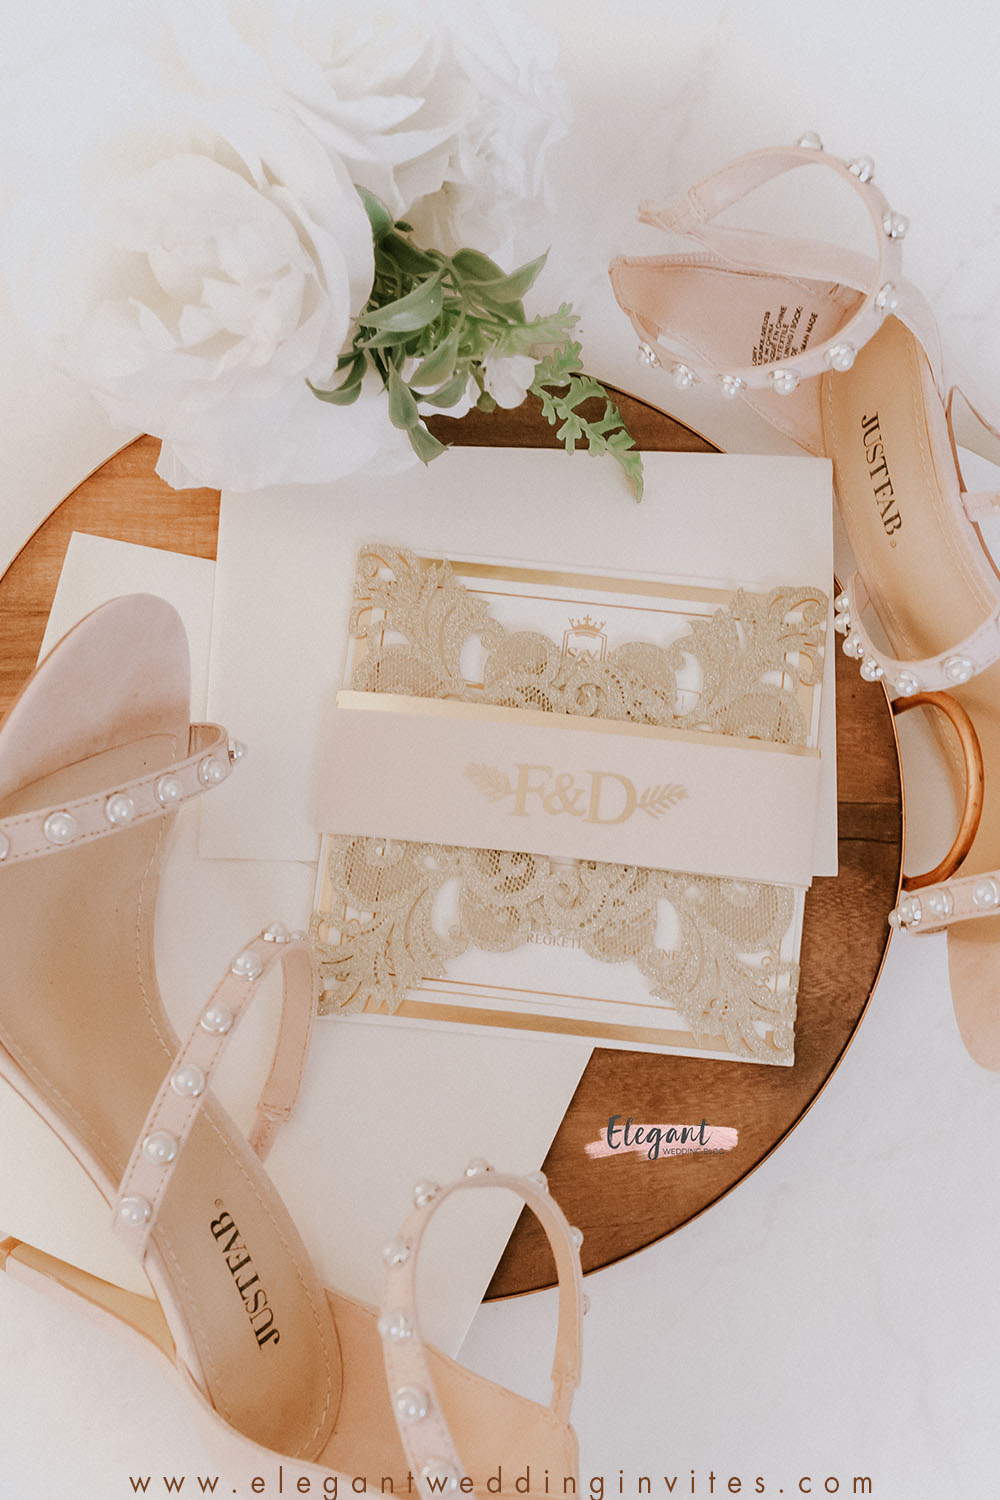 glowing in gold glittery gold laser cut wedding invitations with vellum belly band and gold foil imprint